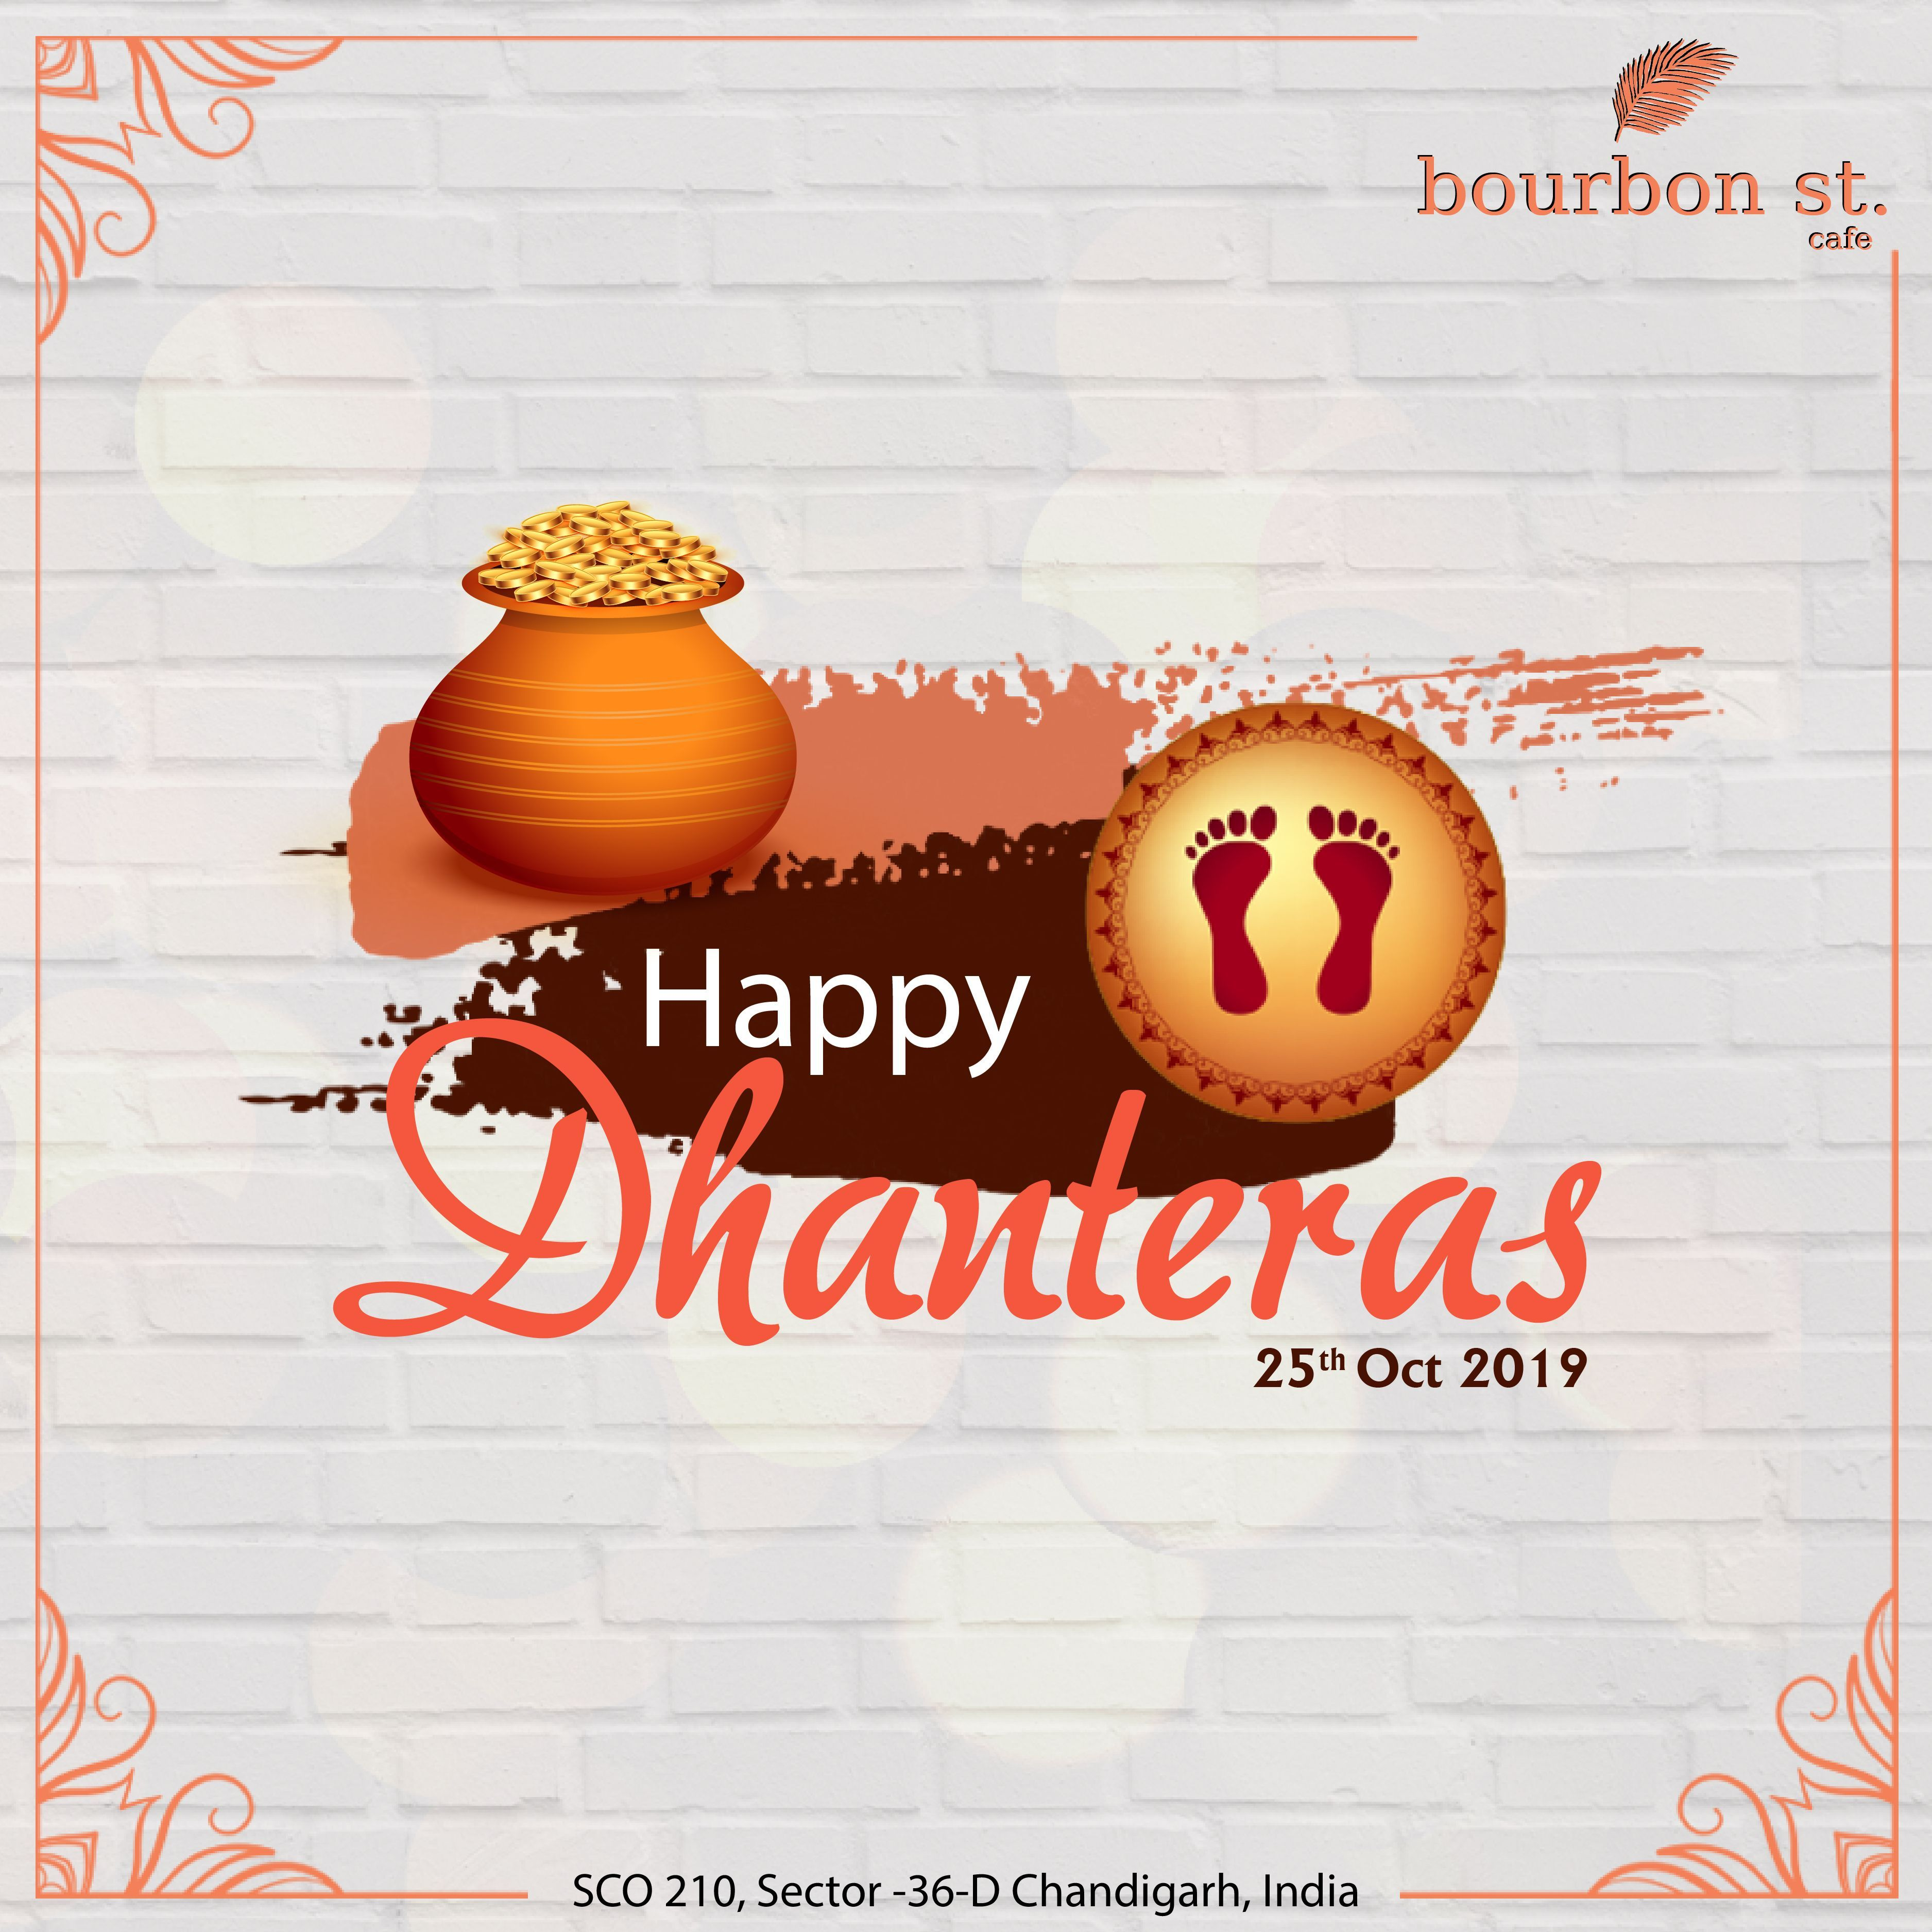 Happy Dhanteras #dhanteraswishes May the Dhanteras festivities endow you with opulence and prosperity. Wishing you a bright future and luck in your life. Happy Dhanteras!  #happydhanteras #Dhanteras2019 #dhanterasfestival #dhanteraspooja #dhanterasspecial #dhanterasgifting #DhanterasNight #festival #luxmi #goddessluxmi #blessings #wealth #dhanterasblessings #dhanteraswishes #bourbonSt #bourbontstreetcafe #bourbon #cafe #nowopen #chandigarh #food #tricity #sector36 #deliciousfood #happydhanteras